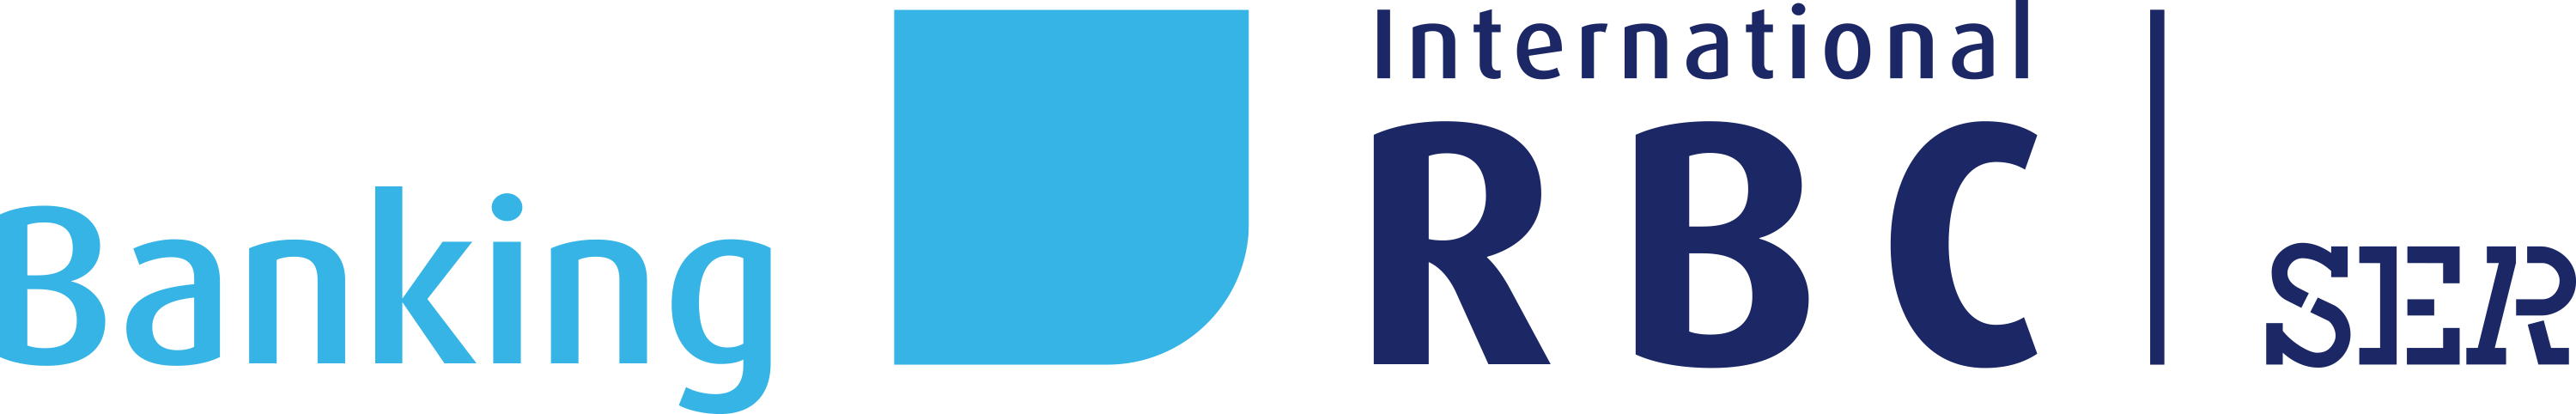 Banking International RBC | SER